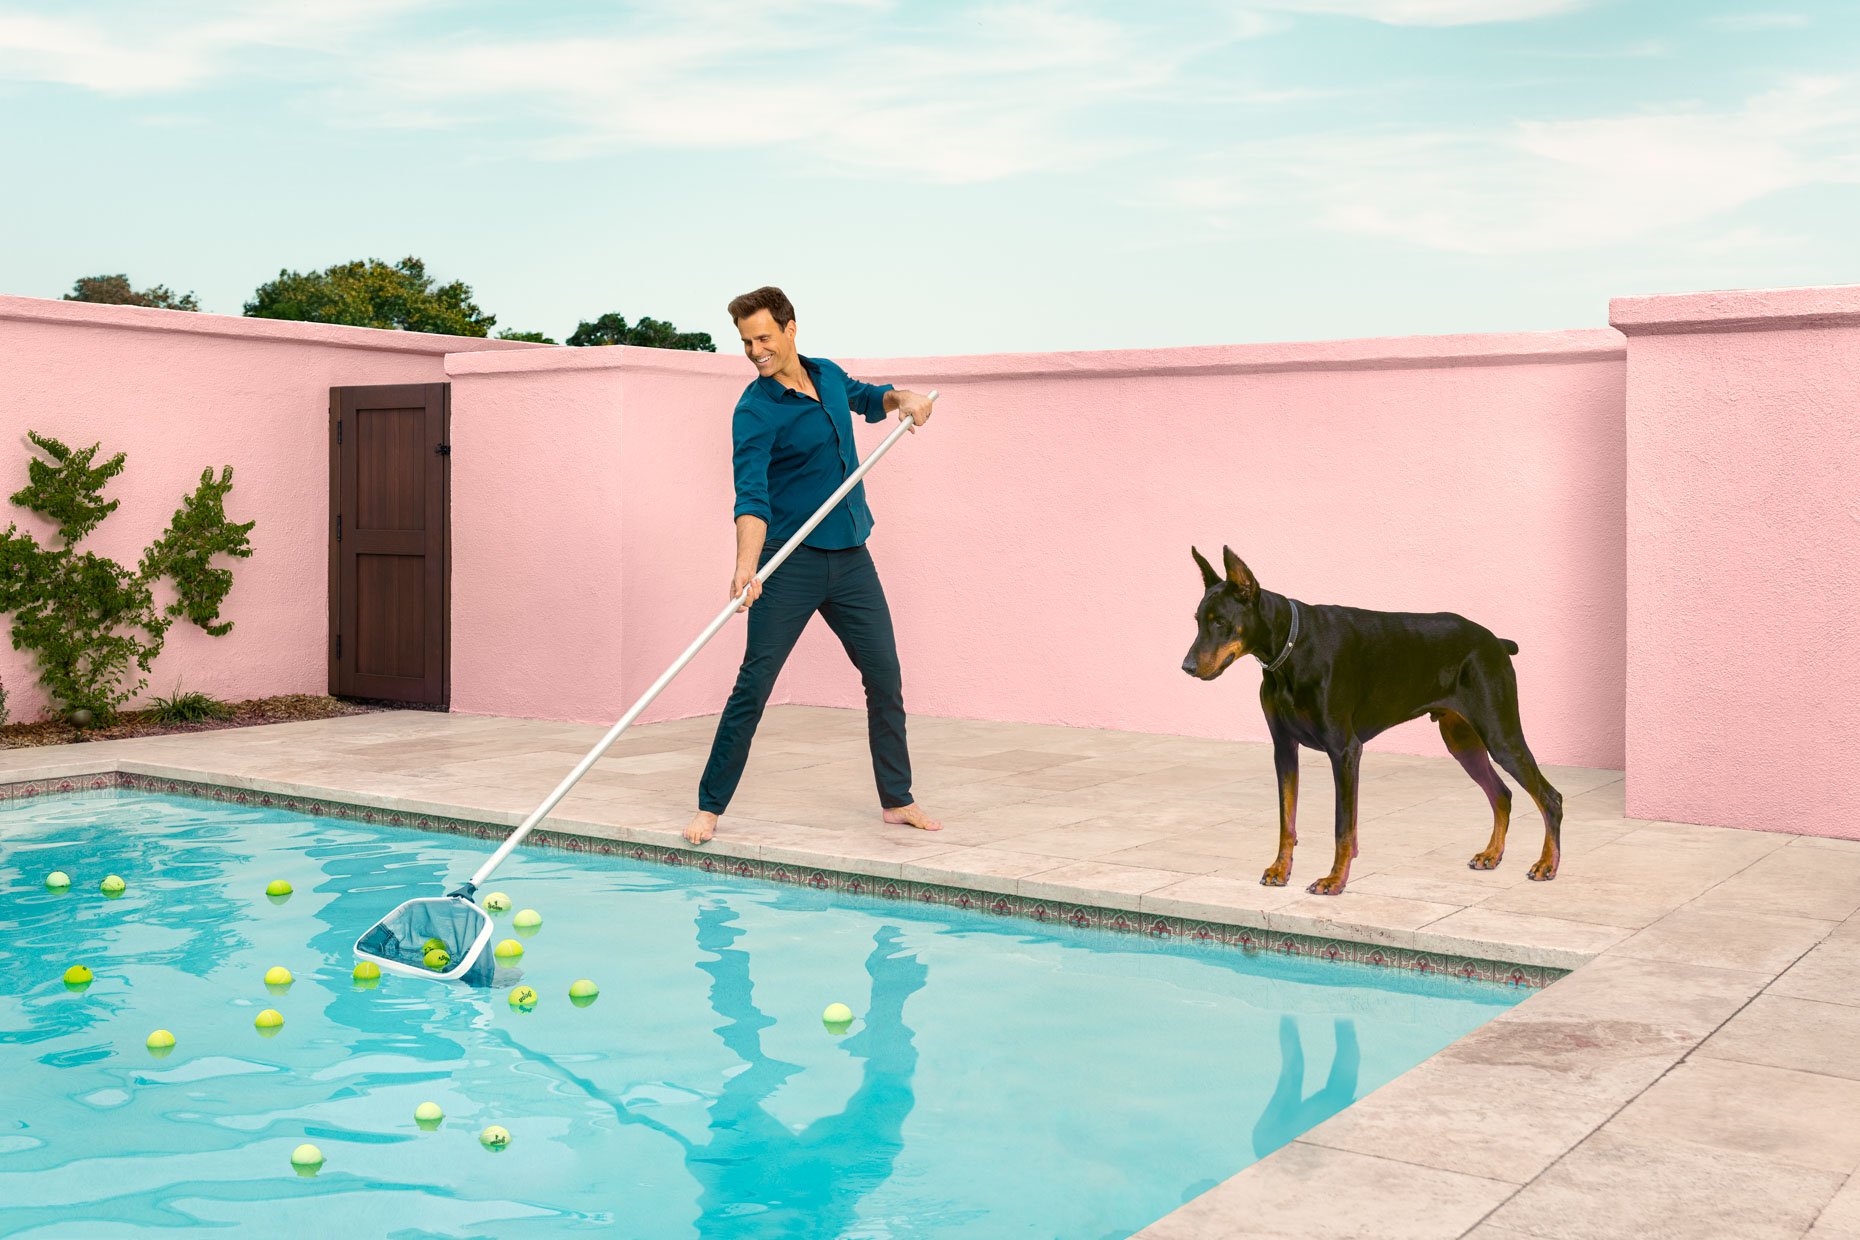 Kremer Johnson - Los Angeles Photographer - Doberman Pool Tennis Balls